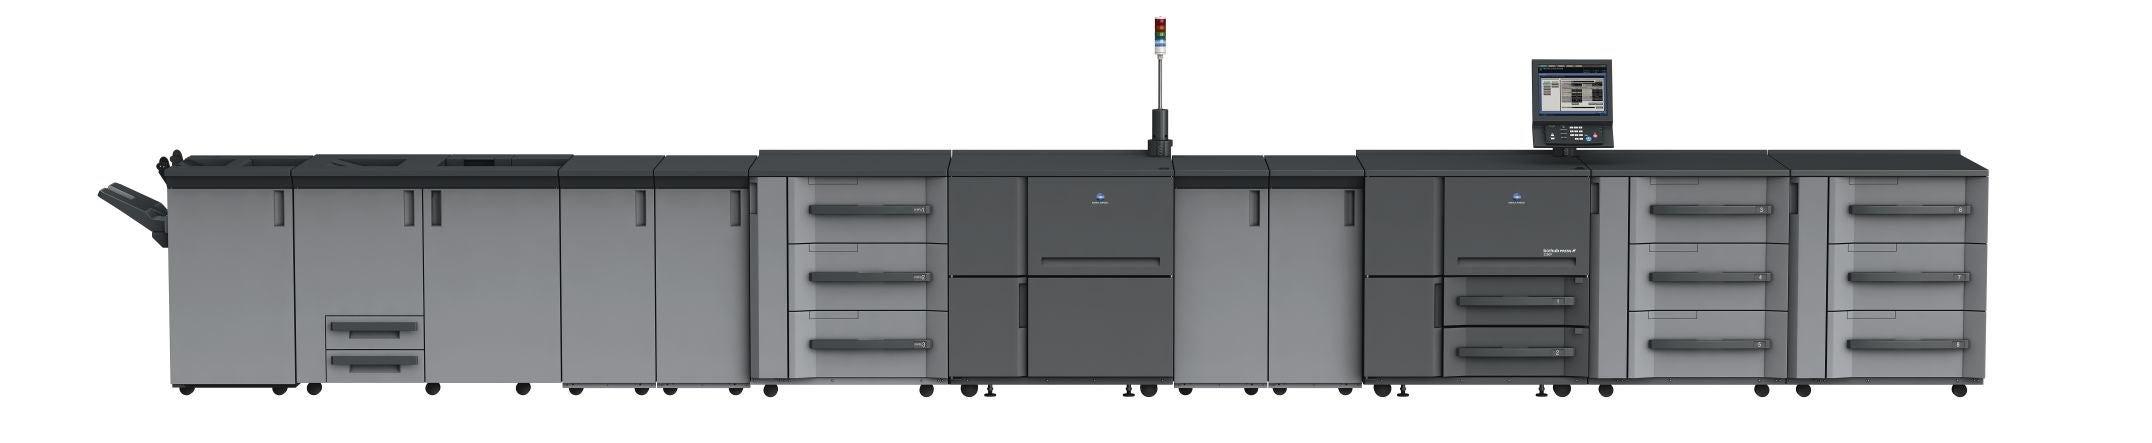 Konica Minolta bizhub PRESS 2250p professionel printer